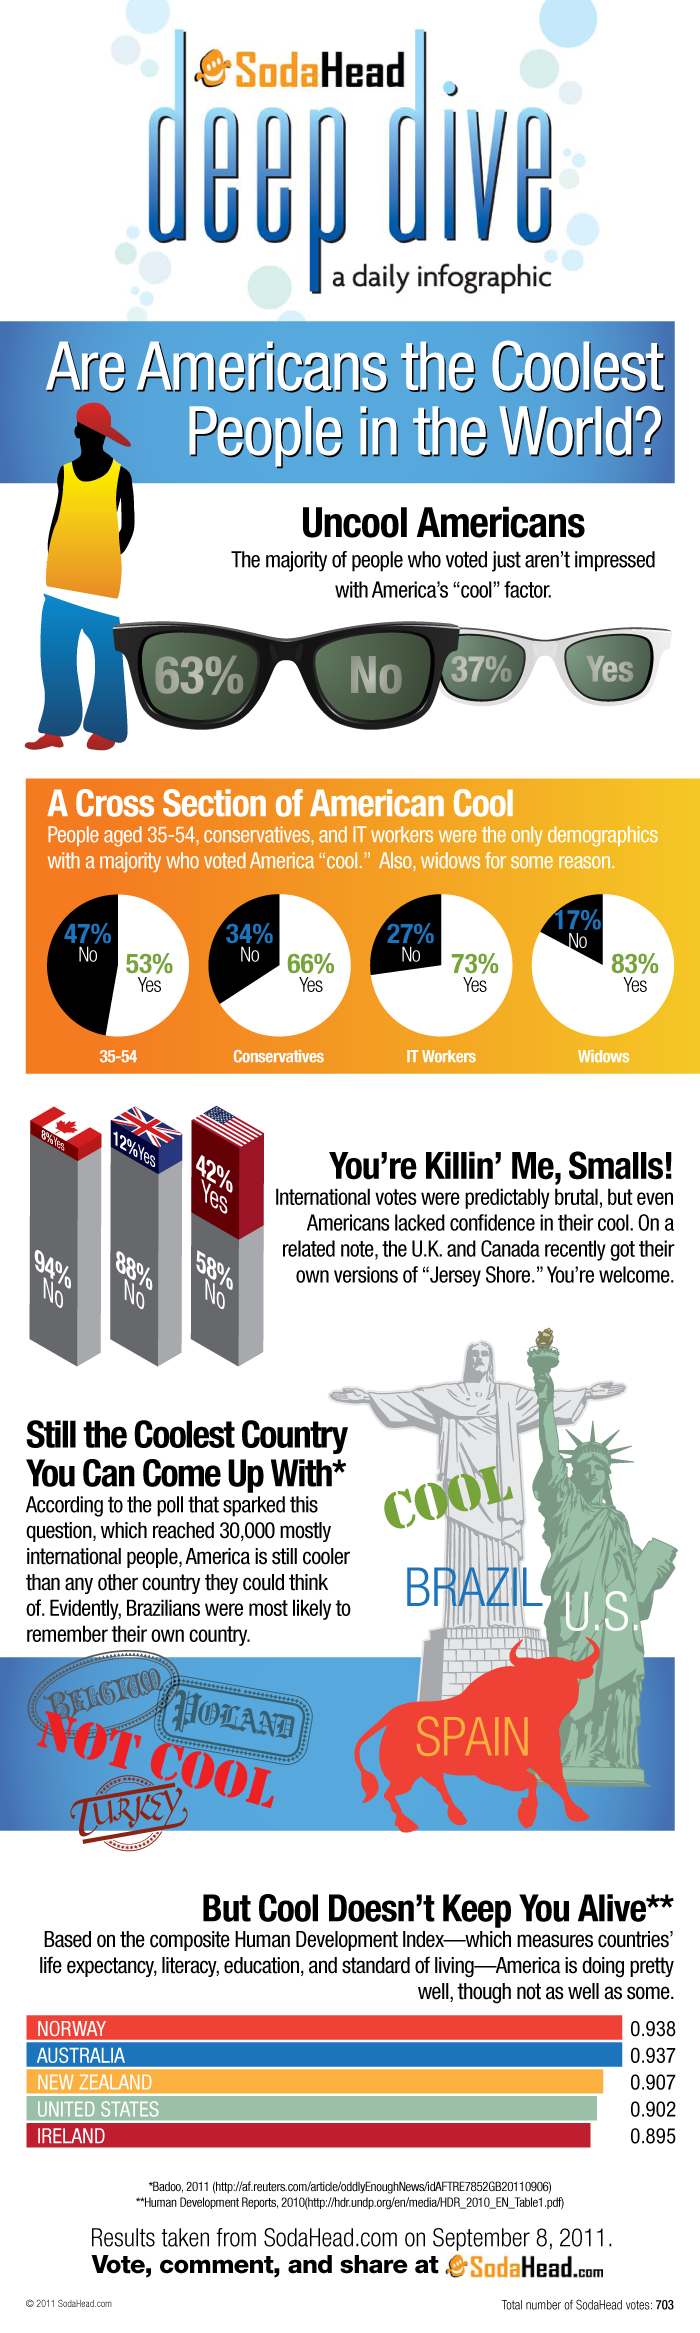 Are Americans the Coolest People in the World? (Infographic)